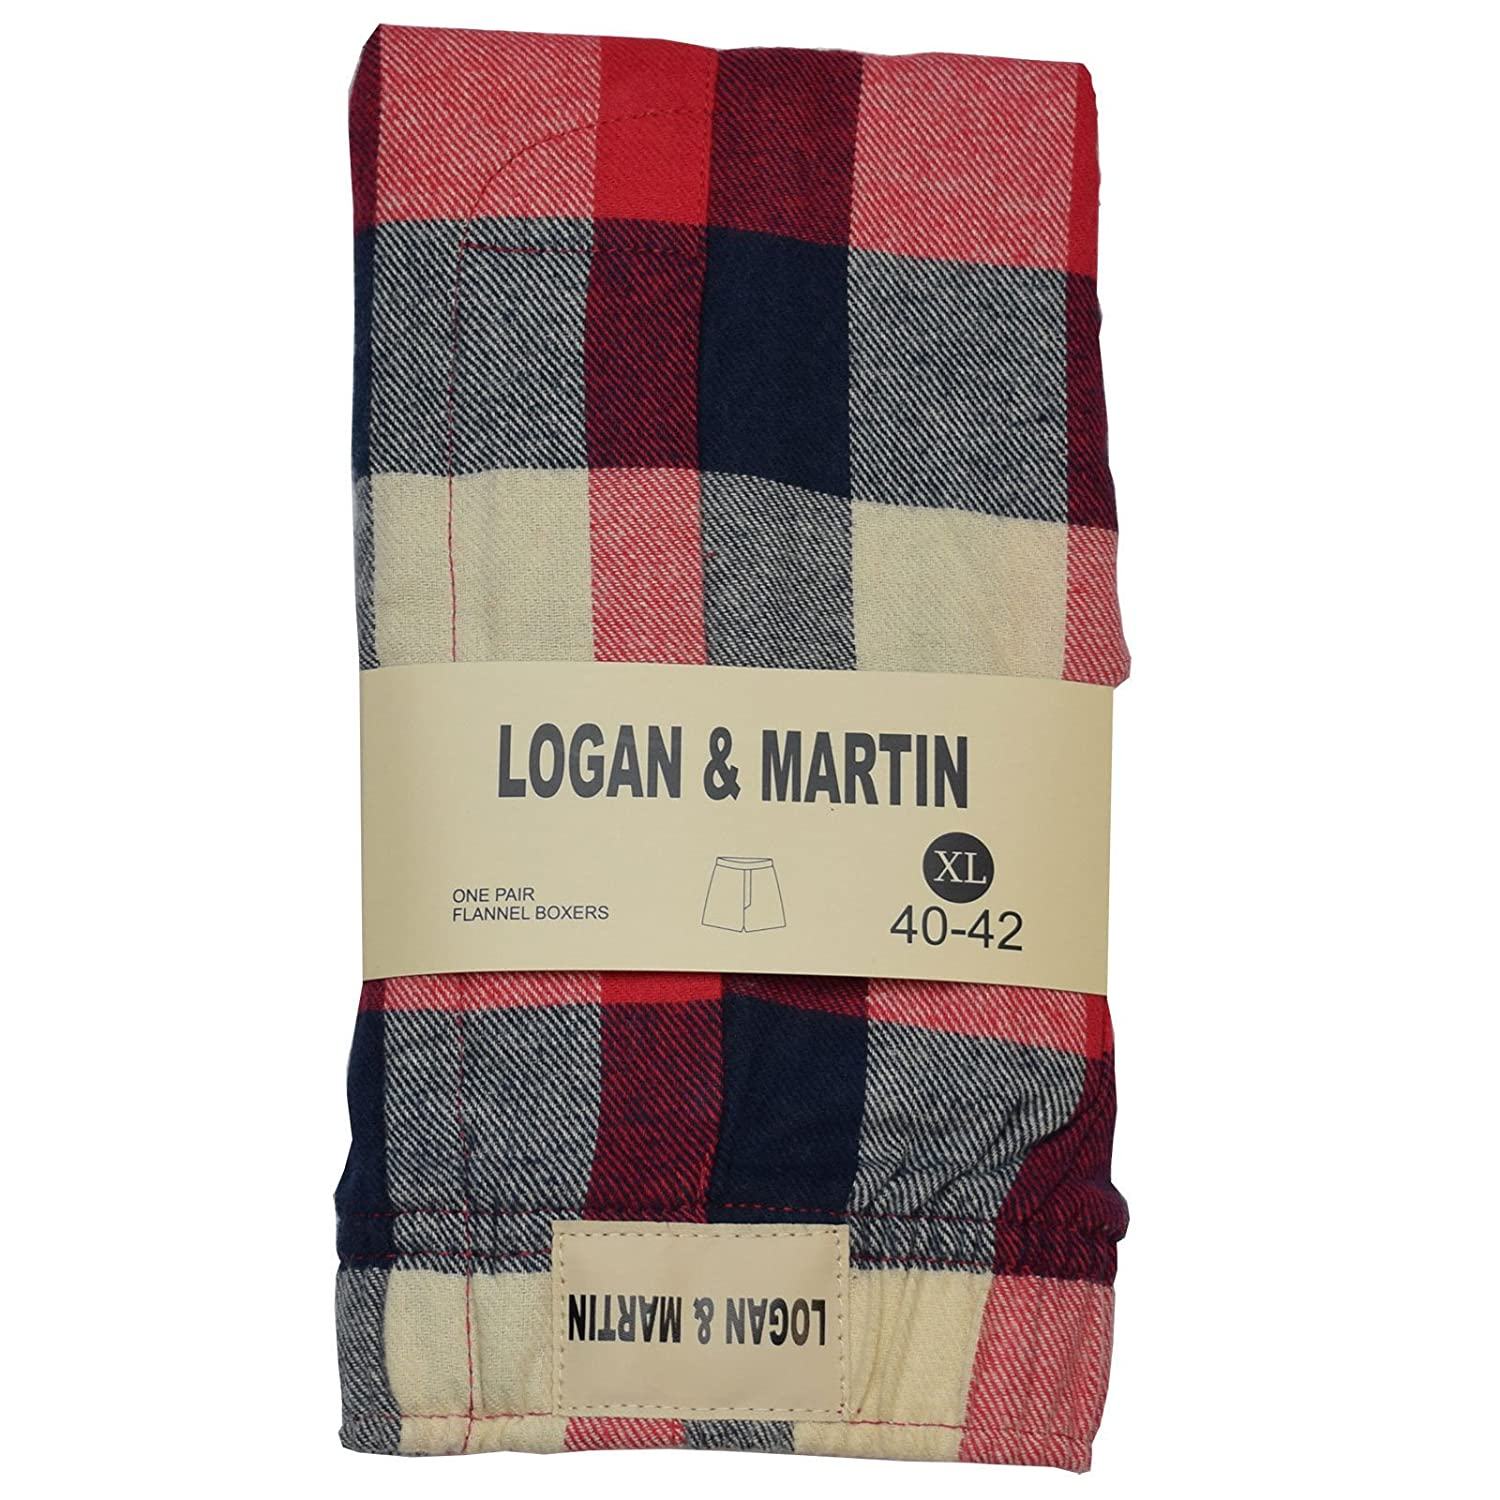 Logan and Martin Men's 100% Cotton Flannel Boxers in XL or XXL